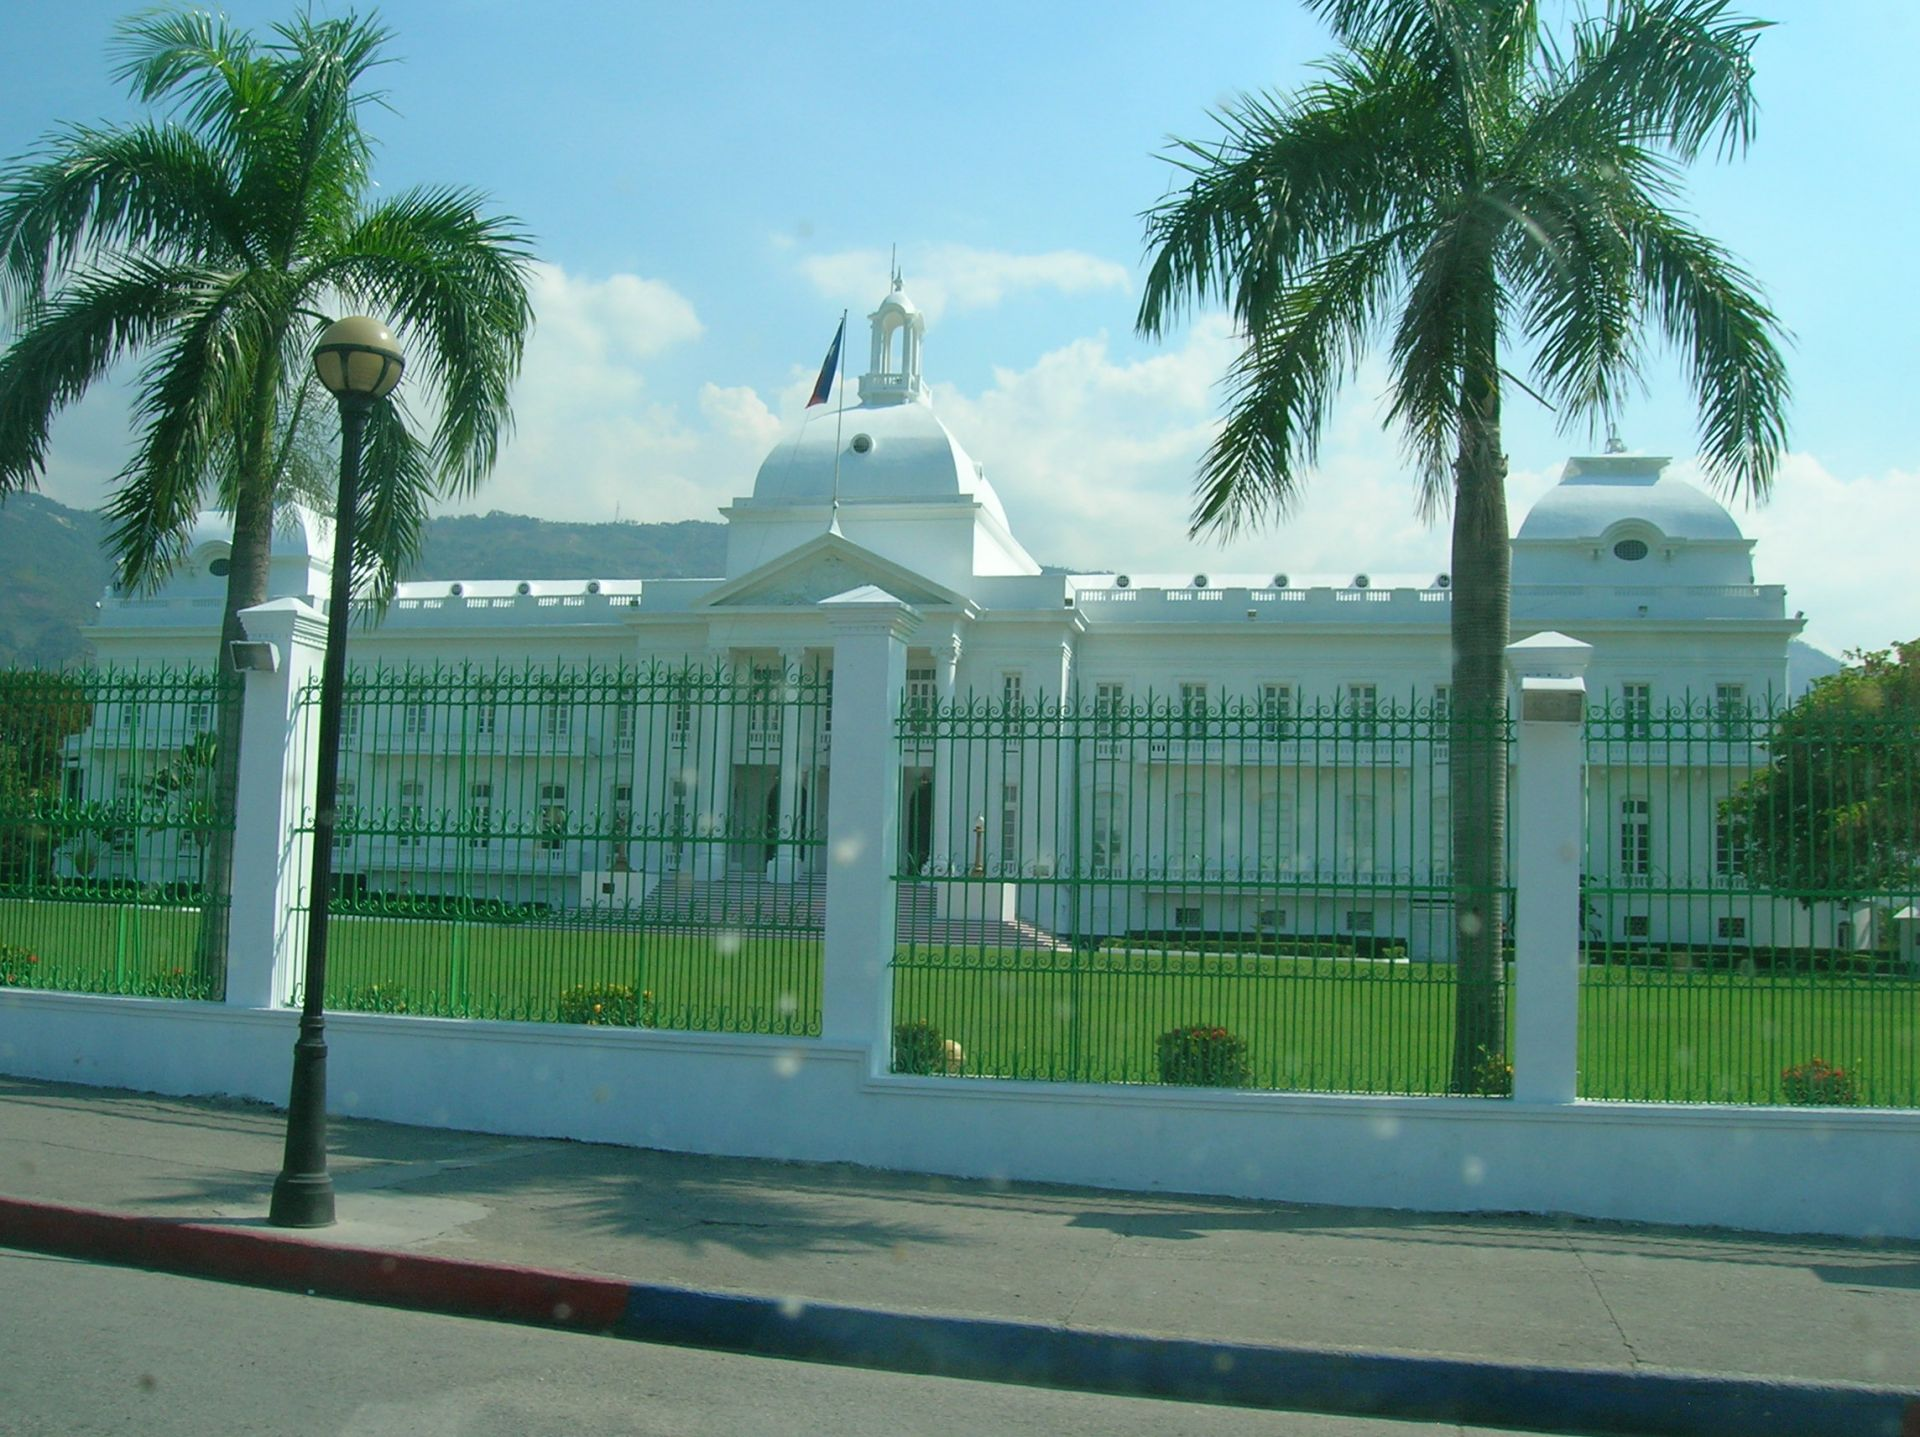 Back in Port au Prince, we drove past the Presidential Palace.